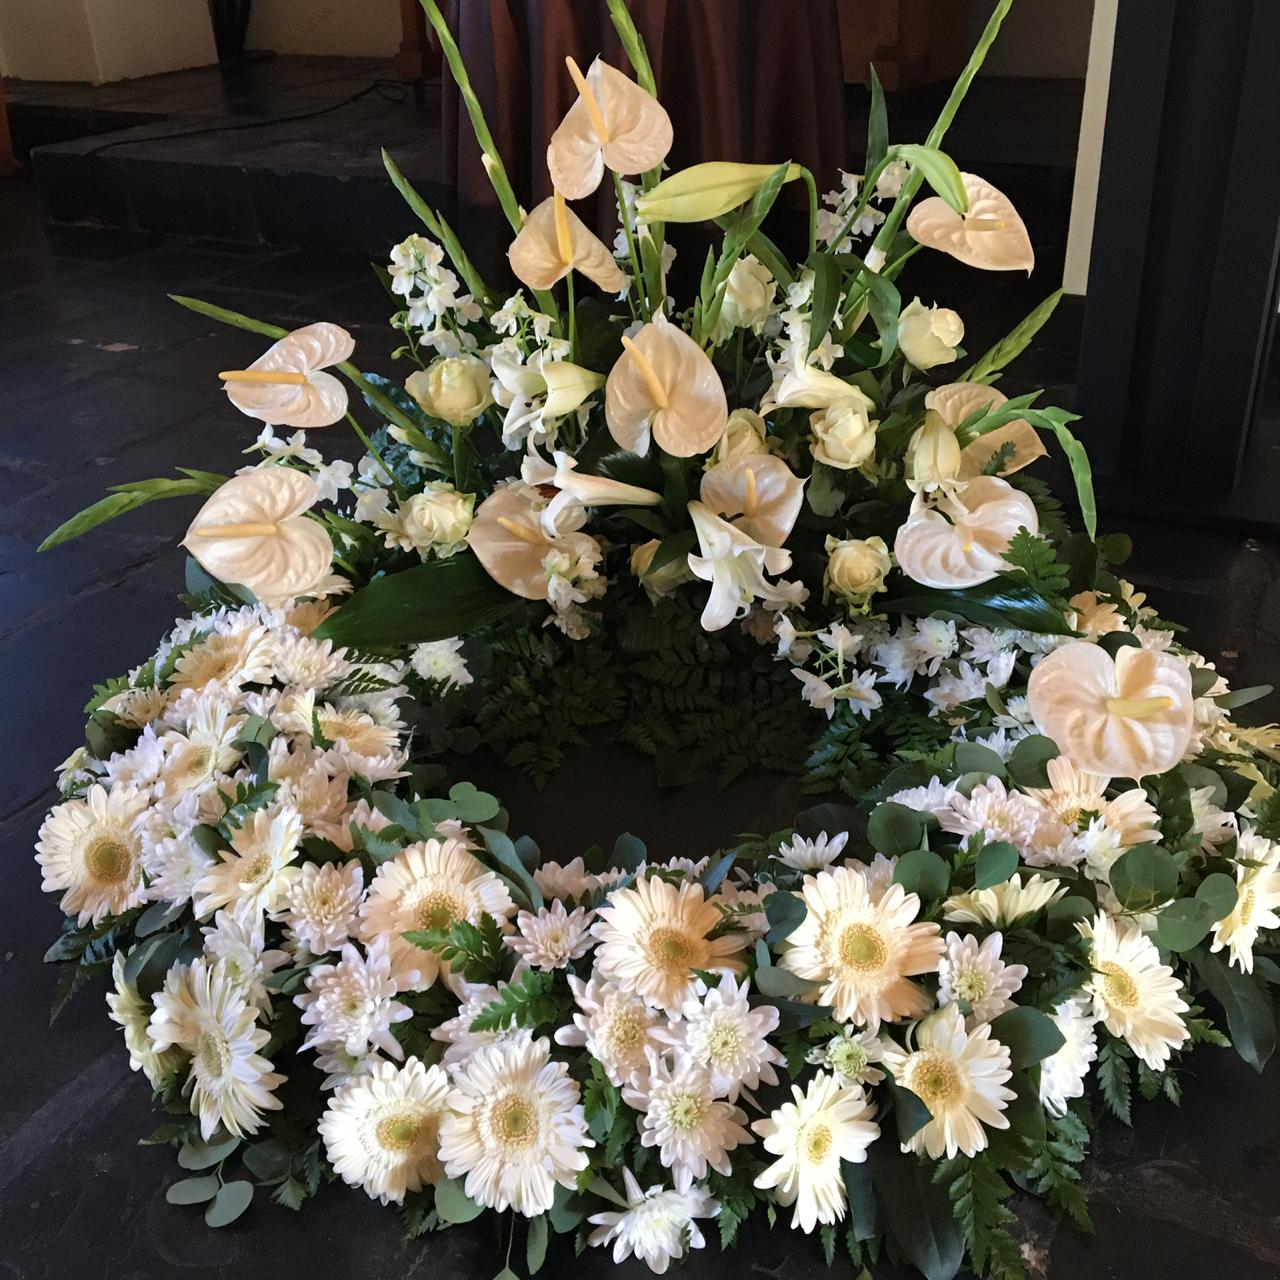 White flowers decorated in a large wreathe